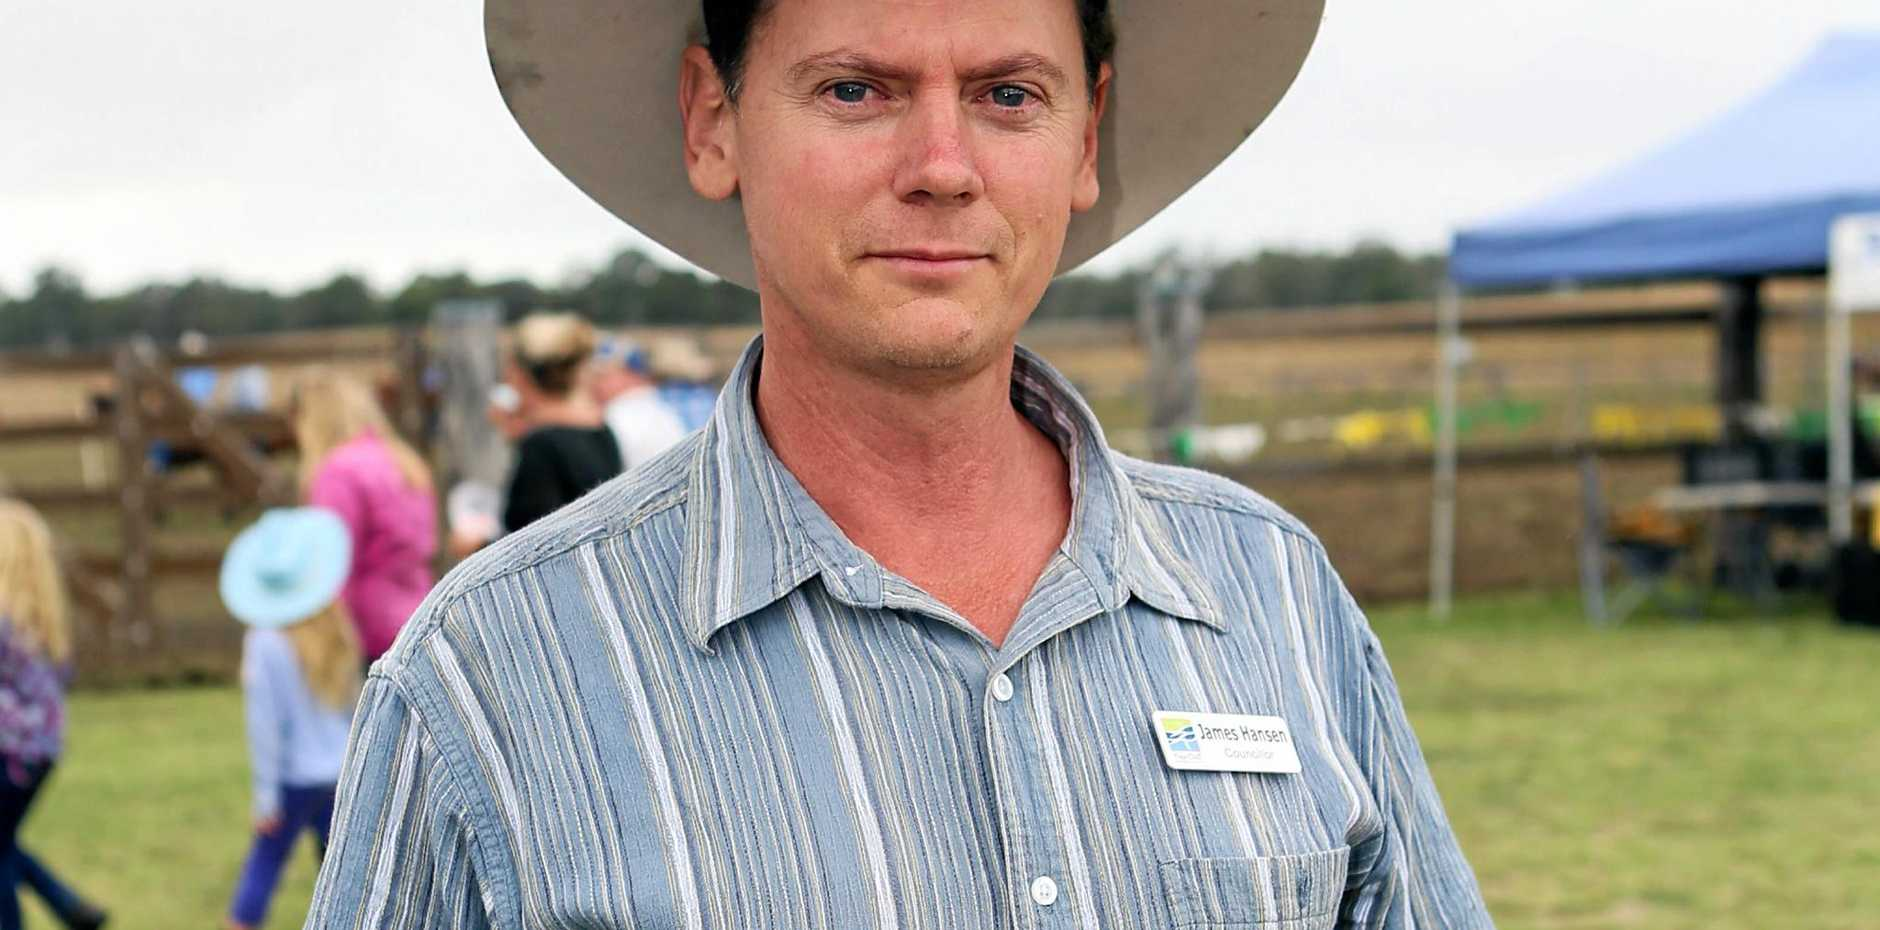 Maryborough candidate for One Nation James Hansen said a discussion on banning the burqa